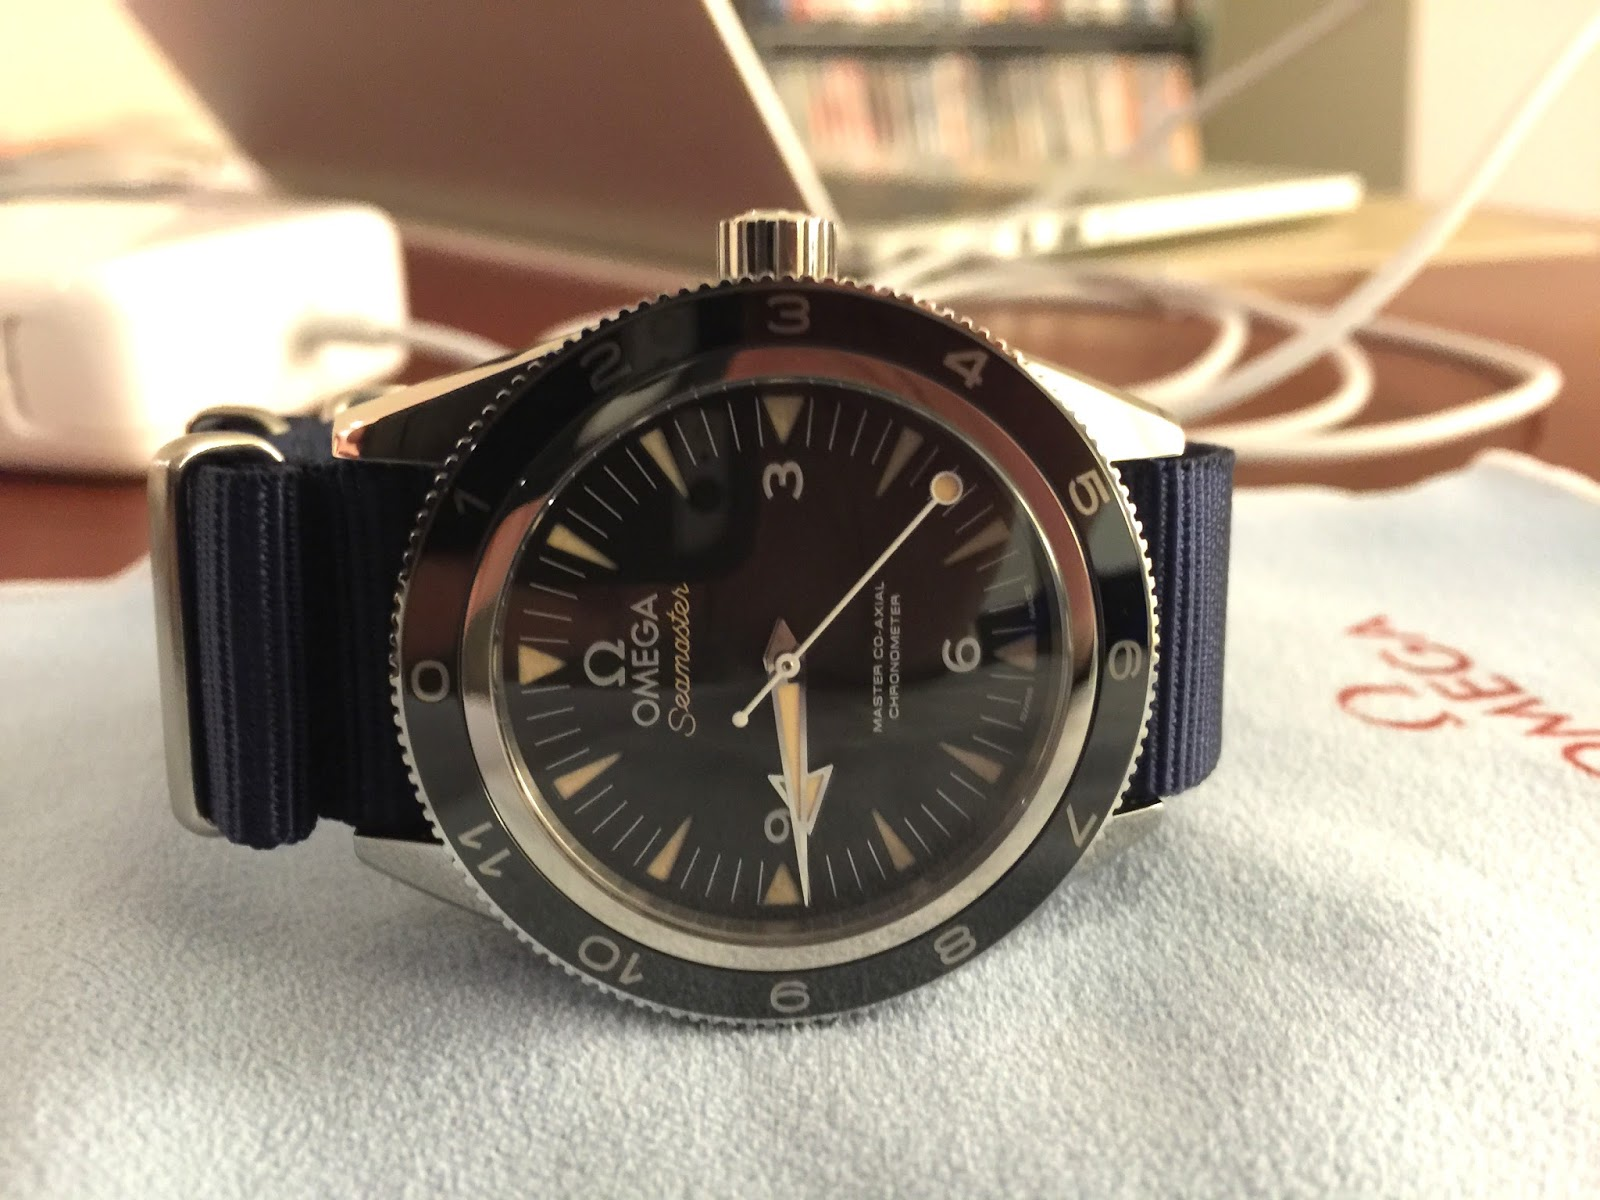 85f0639dca5 Omega Seamaster 300 SPECTRE Limited Edition